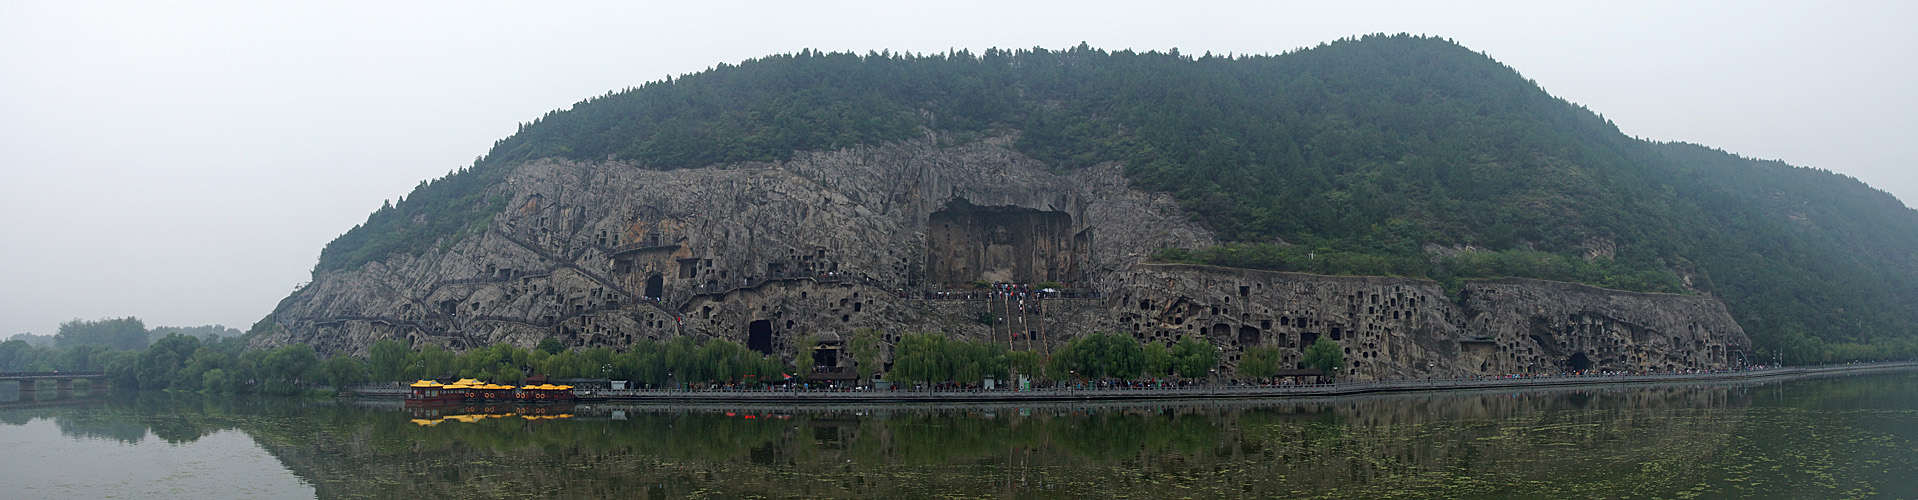 Photo panoramique des grottes de Longmen